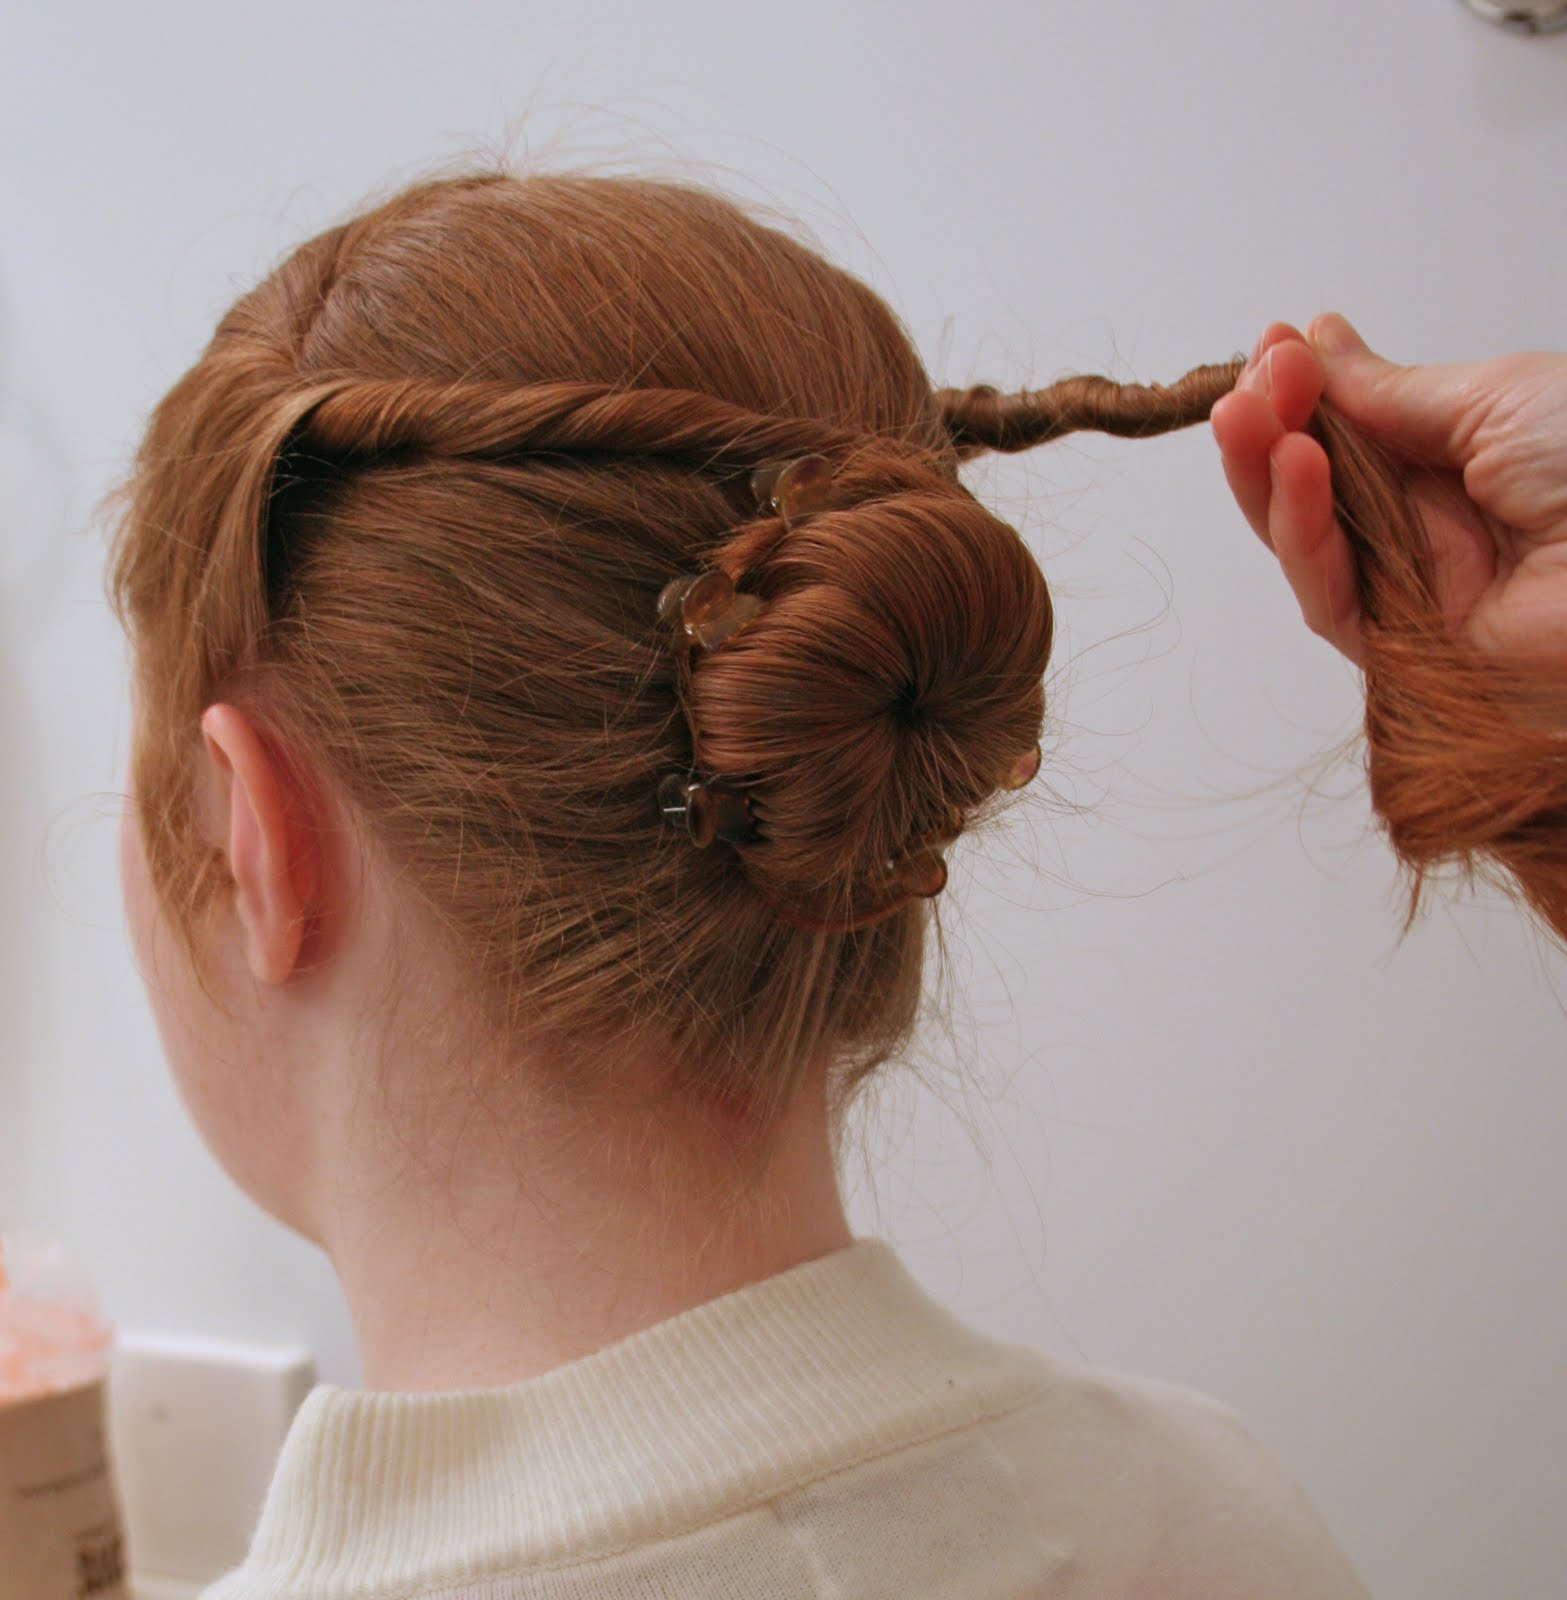 southron creations: how to do a civil war hairstyle